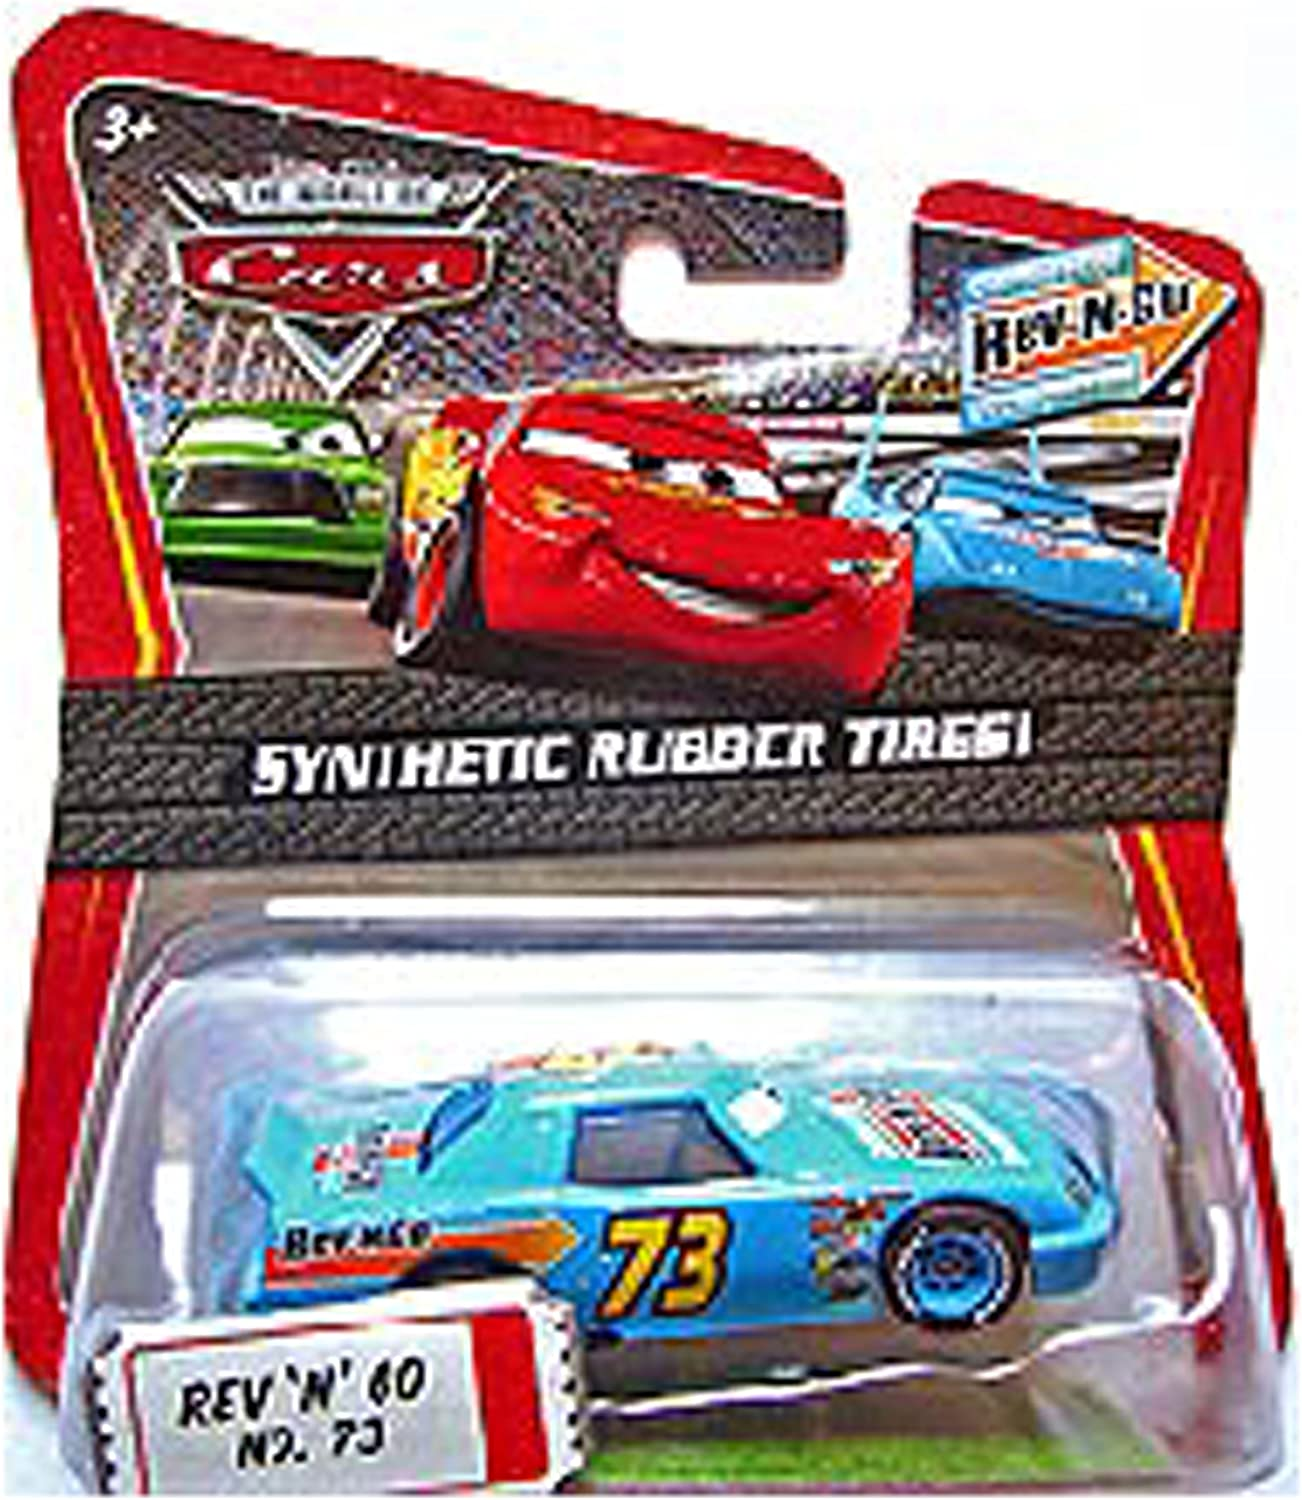 Disney Pixar Cars REV N GO Kmart 3 with rubber tires No.73